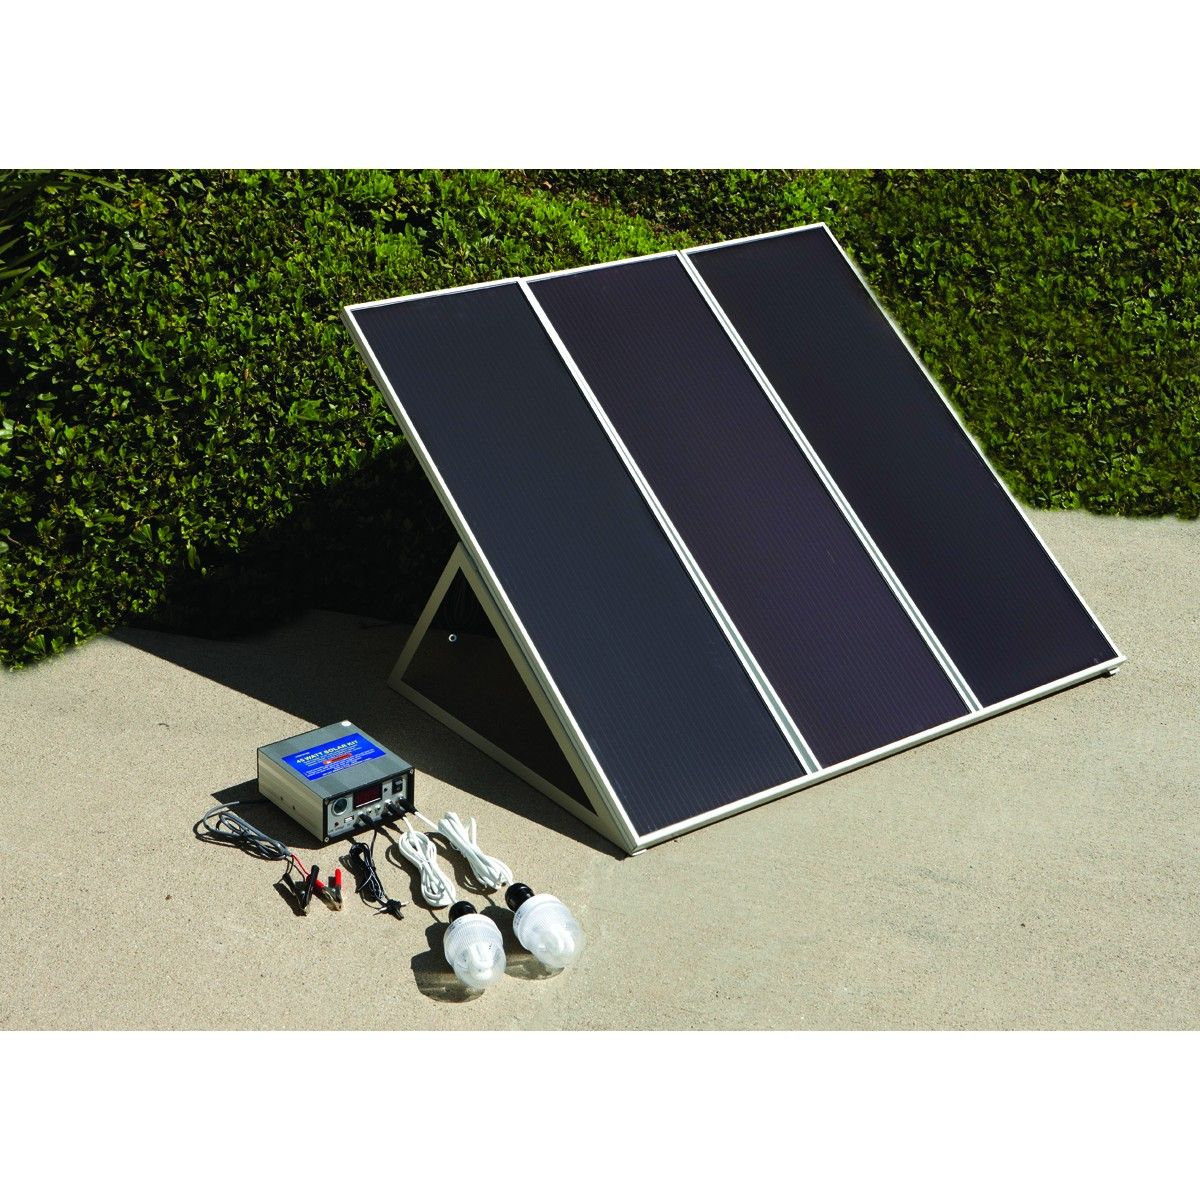 Harbor Freight Tools 45 Watt Solar Panel Kit Is Sometimes Available For 170 Or Less It S 3 Really Durable 15 Solar Panels Diy Solar Panel Solar Panel Kits